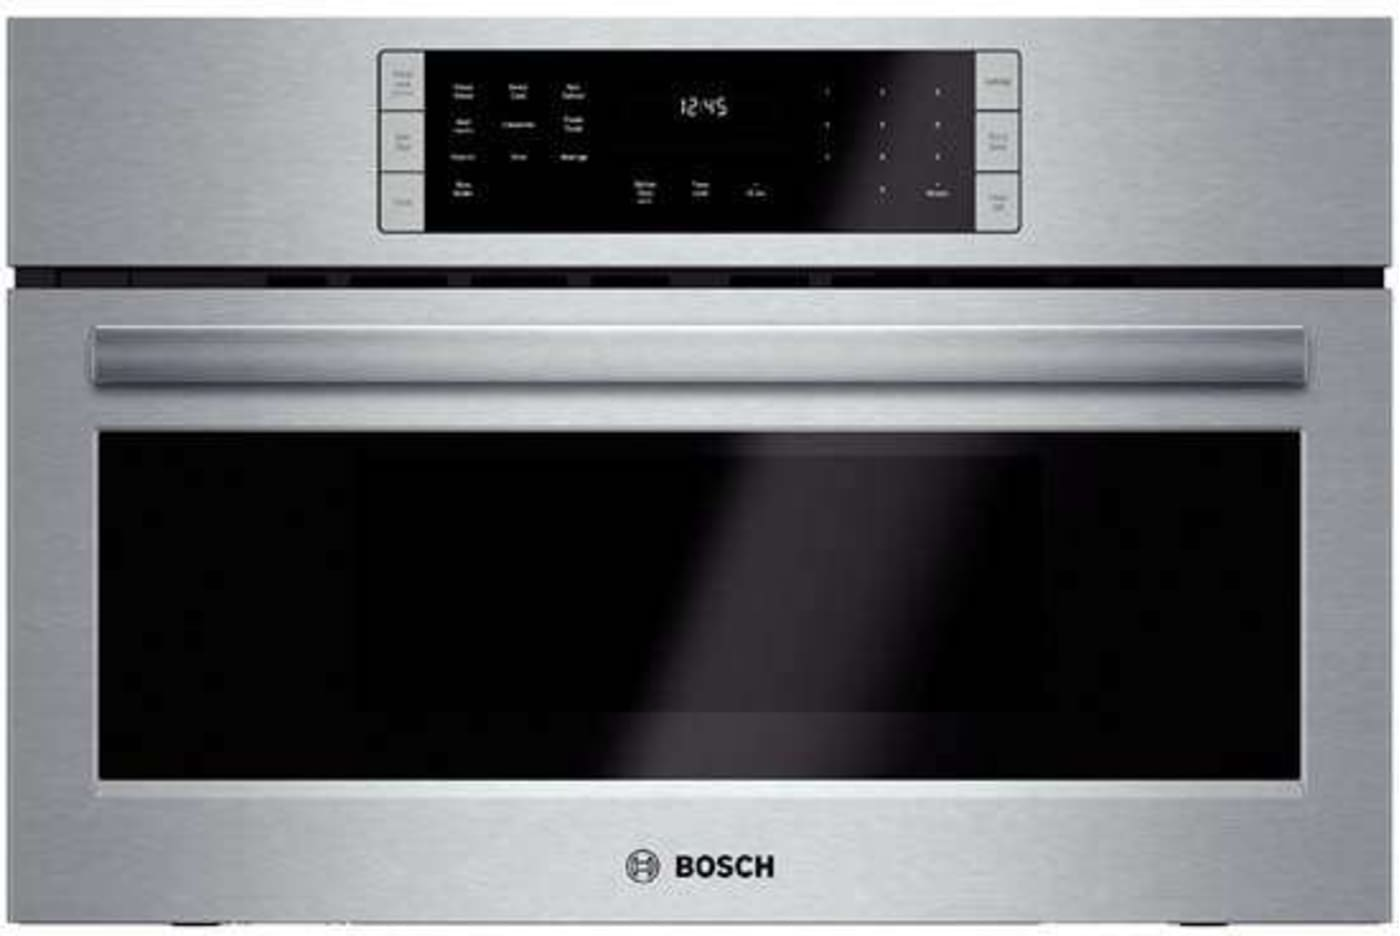 HMC80151UC by Bosch - Electric Wall Ovens | Goedekers.com